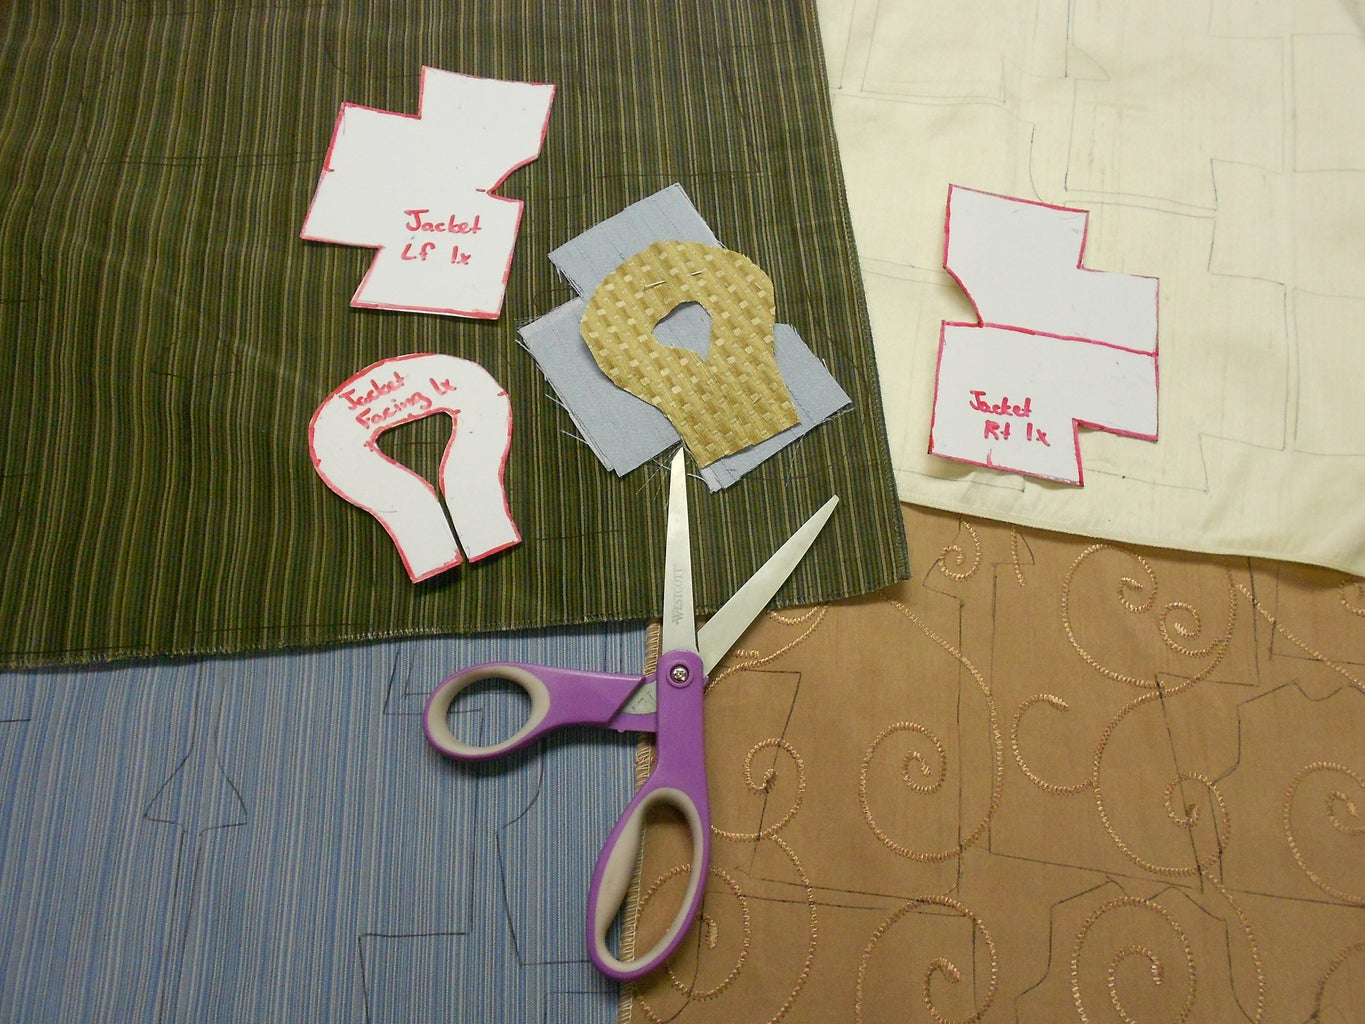 Cut Out Your Fabric Pieces